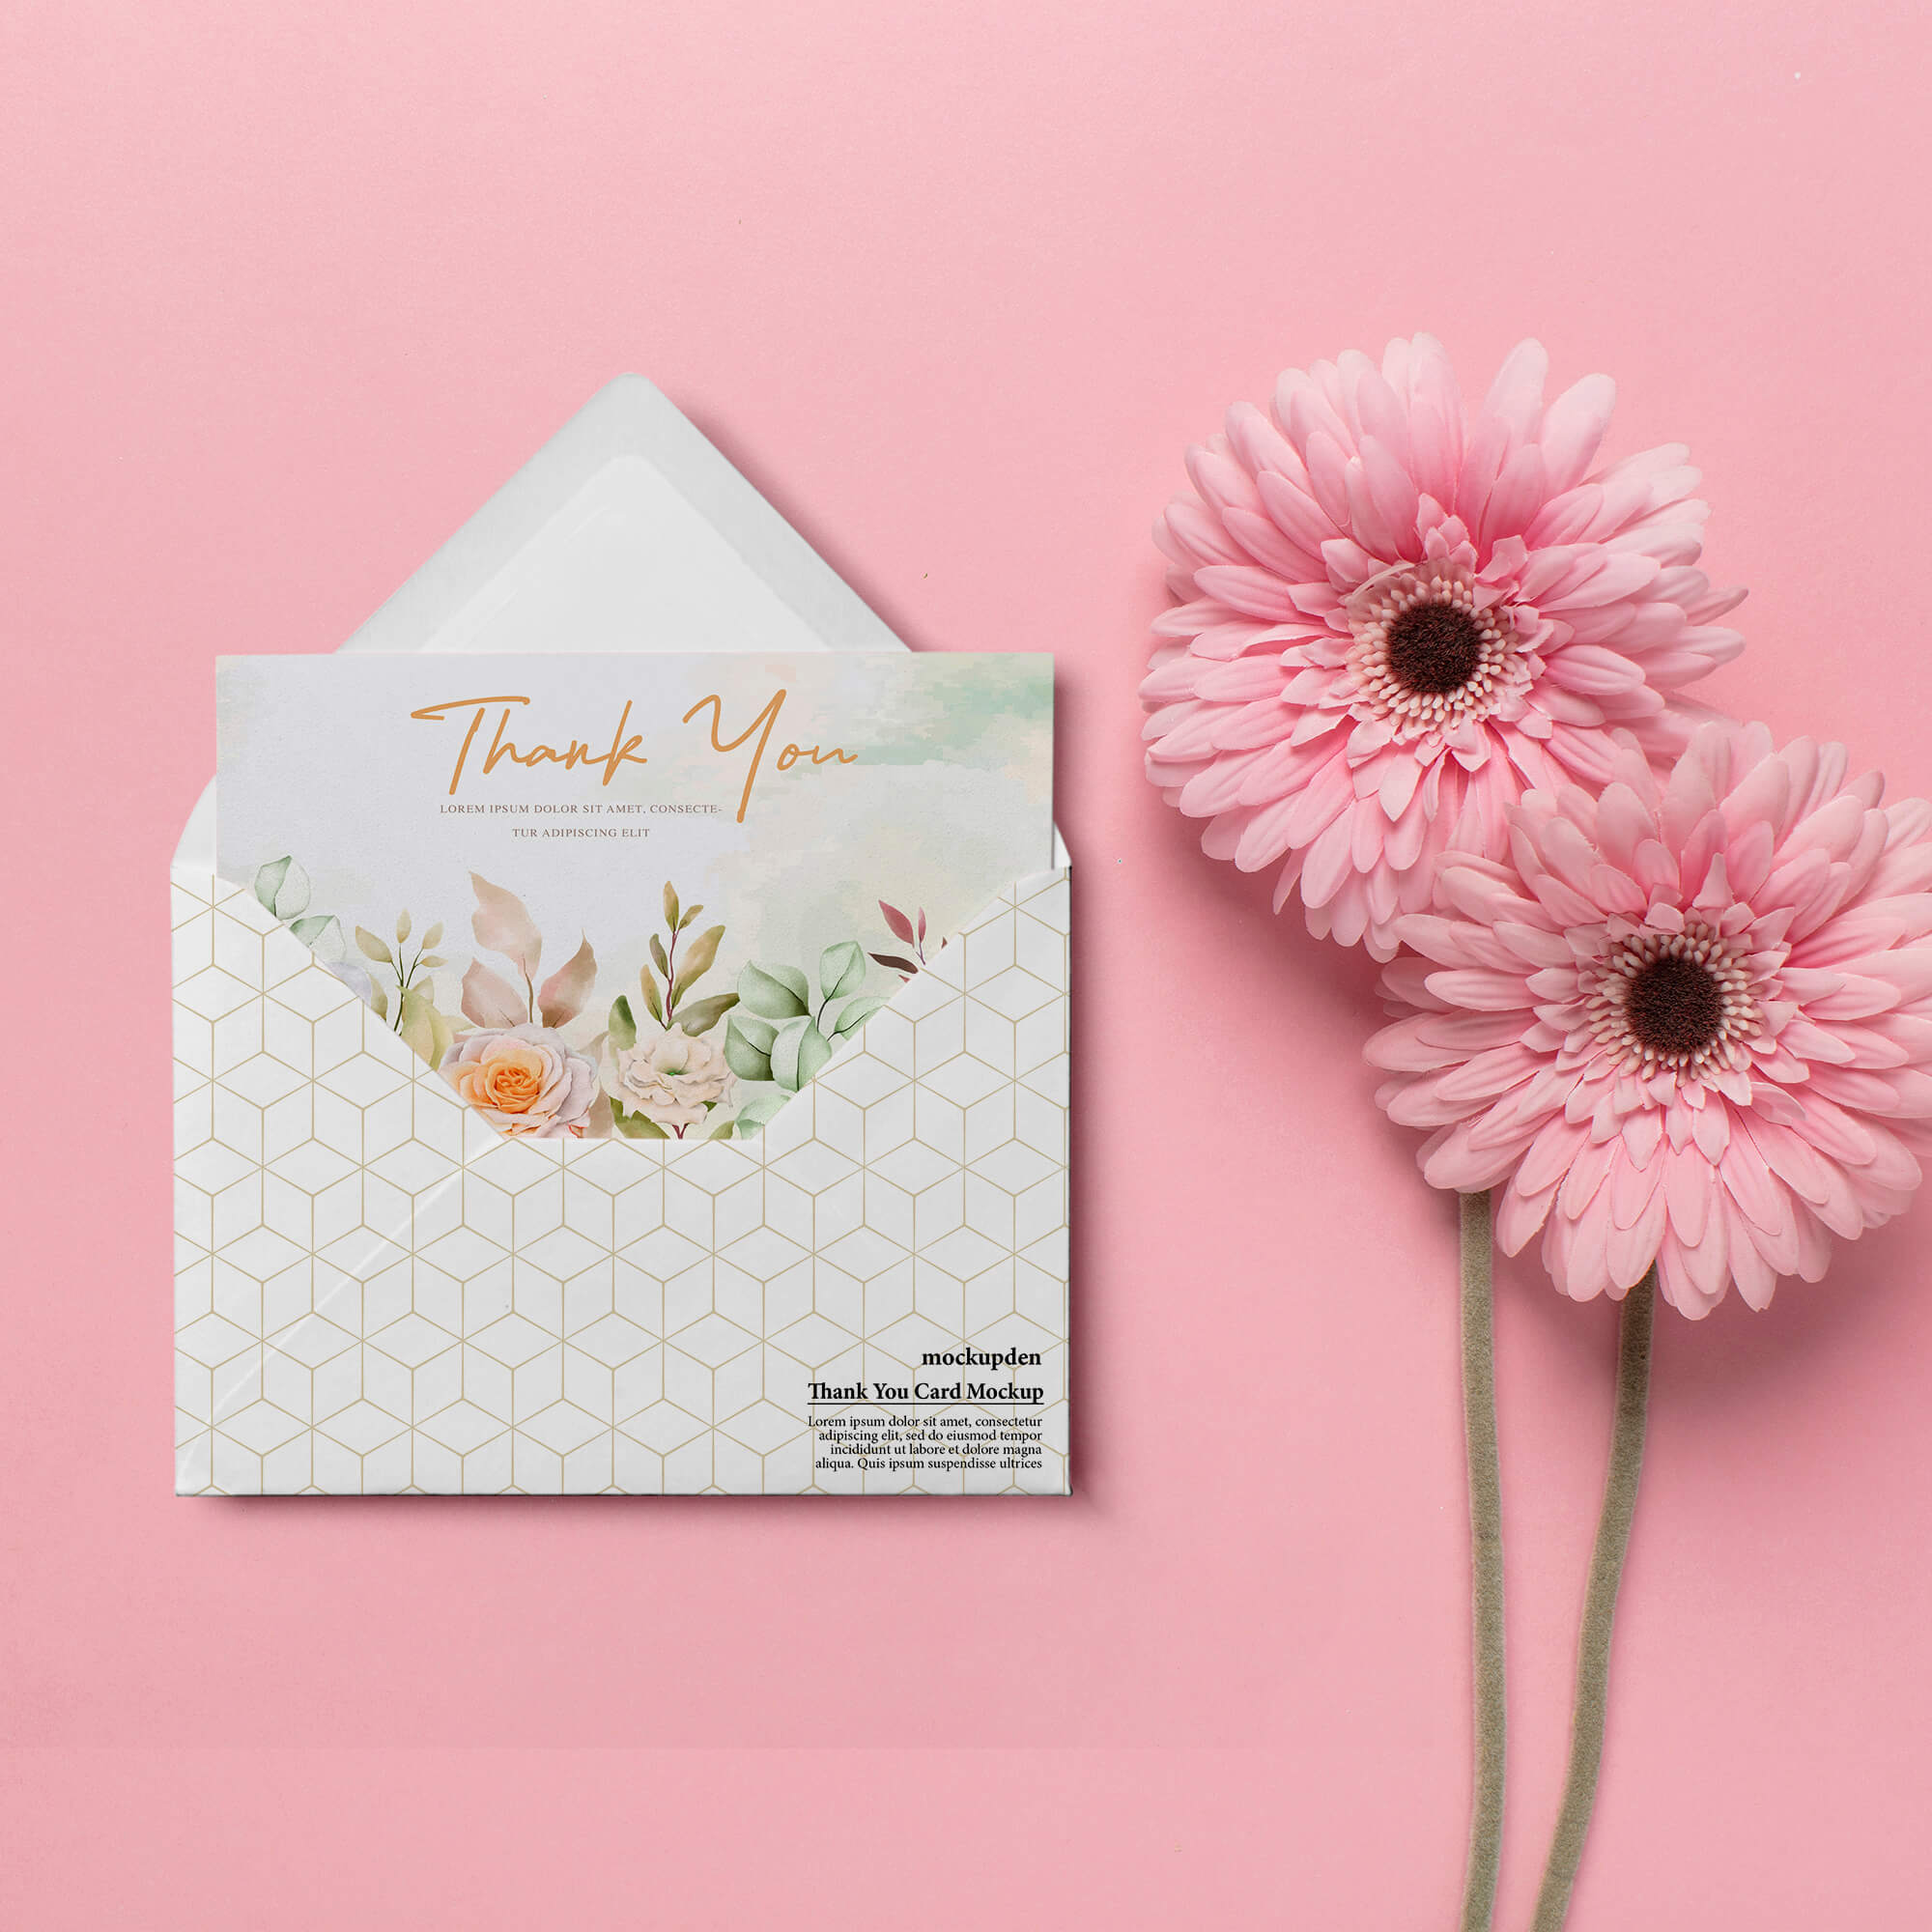 Free Thank You Card Mockup PSD Template